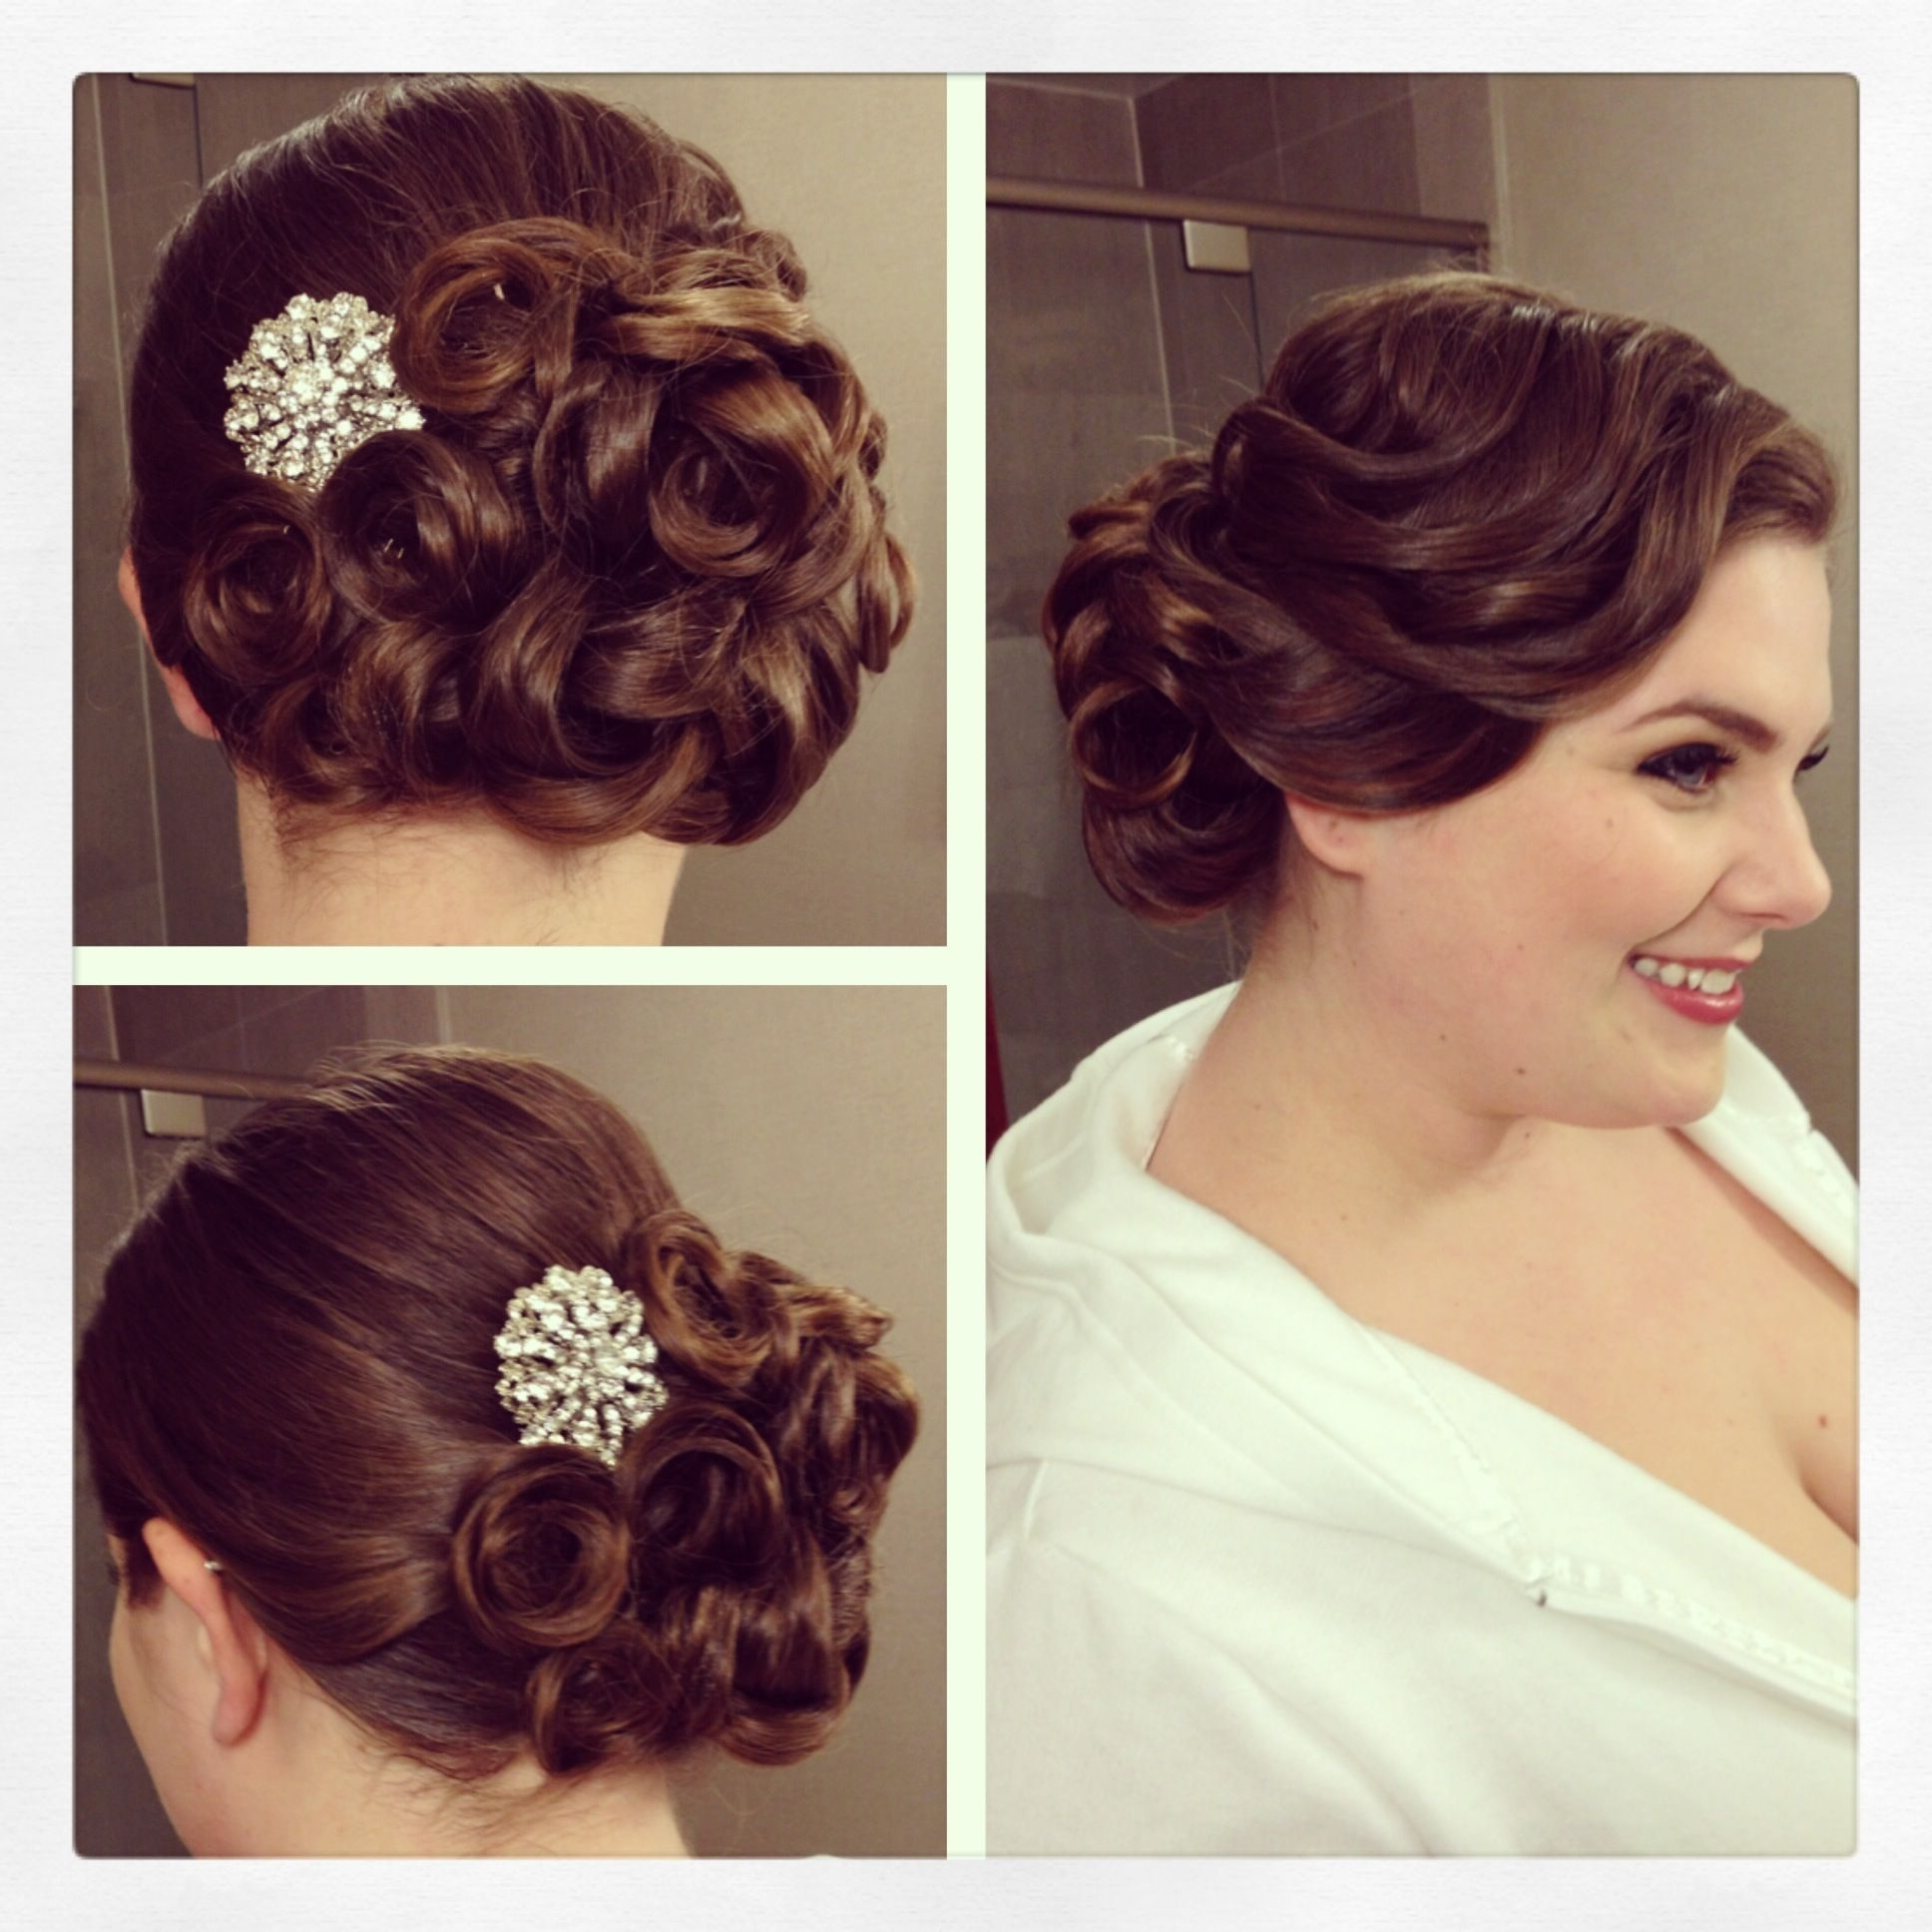 Vintage Side Updo, Vintage Hairstyle, Pin Curls, Bridal Hair, Bridal Inside Side Updo Hairstyles (Gallery 15 of 15)